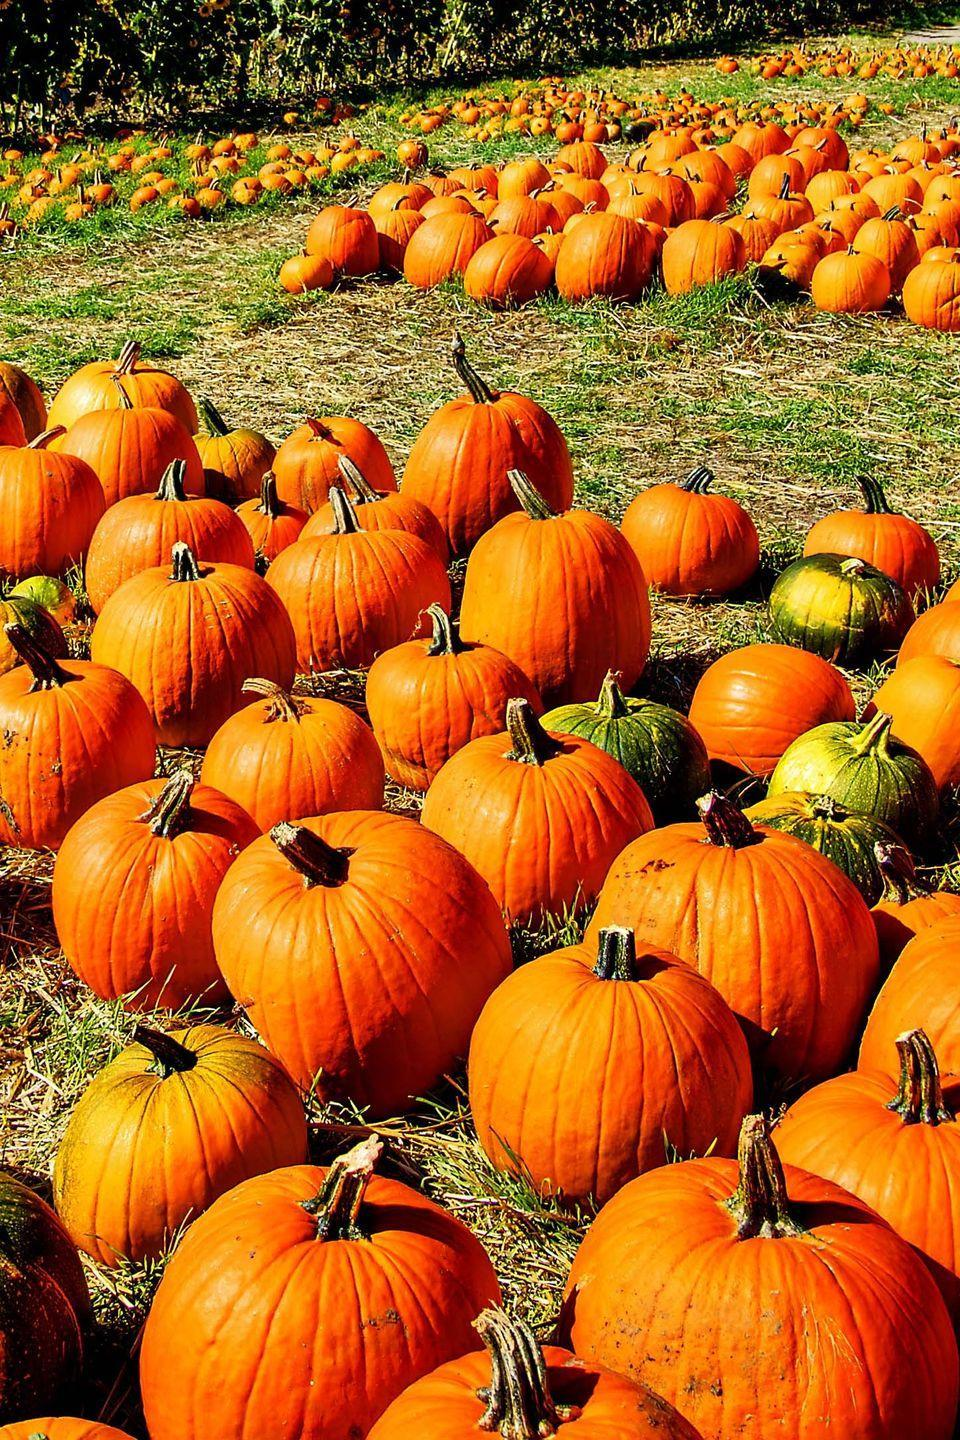 """<p>This <a href=""""https://www.valaspumpkinpatch.com/"""" rel=""""nofollow noopener"""" target=""""_blank"""" data-ylk=""""slk:family-owned pumpkin farm"""" class=""""link rapid-noclick-resp"""">family-owned pumpkin farm</a> in <a href=""""https://go.redirectingat.com?id=74968X1596630&url=https%3A%2F%2Fwww.tripadvisor.com%2FTourism-g45597-Gretna_Nebraska-Vacations.html&sref=https%3A%2F%2Fwww.countryliving.com%2Flife%2Ftravel%2Fg21273436%2Fpumpkin-farms-near-me%2F"""" rel=""""nofollow noopener"""" target=""""_blank"""" data-ylk=""""slk:Gretna, Nebraska"""" class=""""link rapid-noclick-resp"""">Gretna, Nebraska</a>, has been a popular autumnal attraction for more than 32 years. Every year, the activity list grows, but there's one thing you can count on: their large u-pick pumpkin patch. Last year, they debuted their <a href=""""https://www.countryliving.com/life/travel/g2623/apple-picking/"""" rel=""""nofollow noopener"""" target=""""_blank"""" data-ylk=""""slk:apple orchard"""" class=""""link rapid-noclick-resp"""">apple orchard</a> and cider mill, which features orchard hay rides for families and cider tastings for grownups.</p><p><a class=""""link rapid-noclick-resp"""" href=""""https://go.redirectingat.com?id=74968X1596630&url=https%3A%2F%2Fwww.tripadvisor.com%2FAttraction_Review-g45597-d1932171-Reviews-Vala_s_Pumpkin_Patch-Gretna_Nebraska.html&sref=https%3A%2F%2Fwww.countryliving.com%2Flife%2Ftravel%2Fg21273436%2Fpumpkin-farms-near-me%2F"""" rel=""""nofollow noopener"""" target=""""_blank"""" data-ylk=""""slk:PLAN YOUR TRIP"""">PLAN YOUR TRIP</a></p>"""